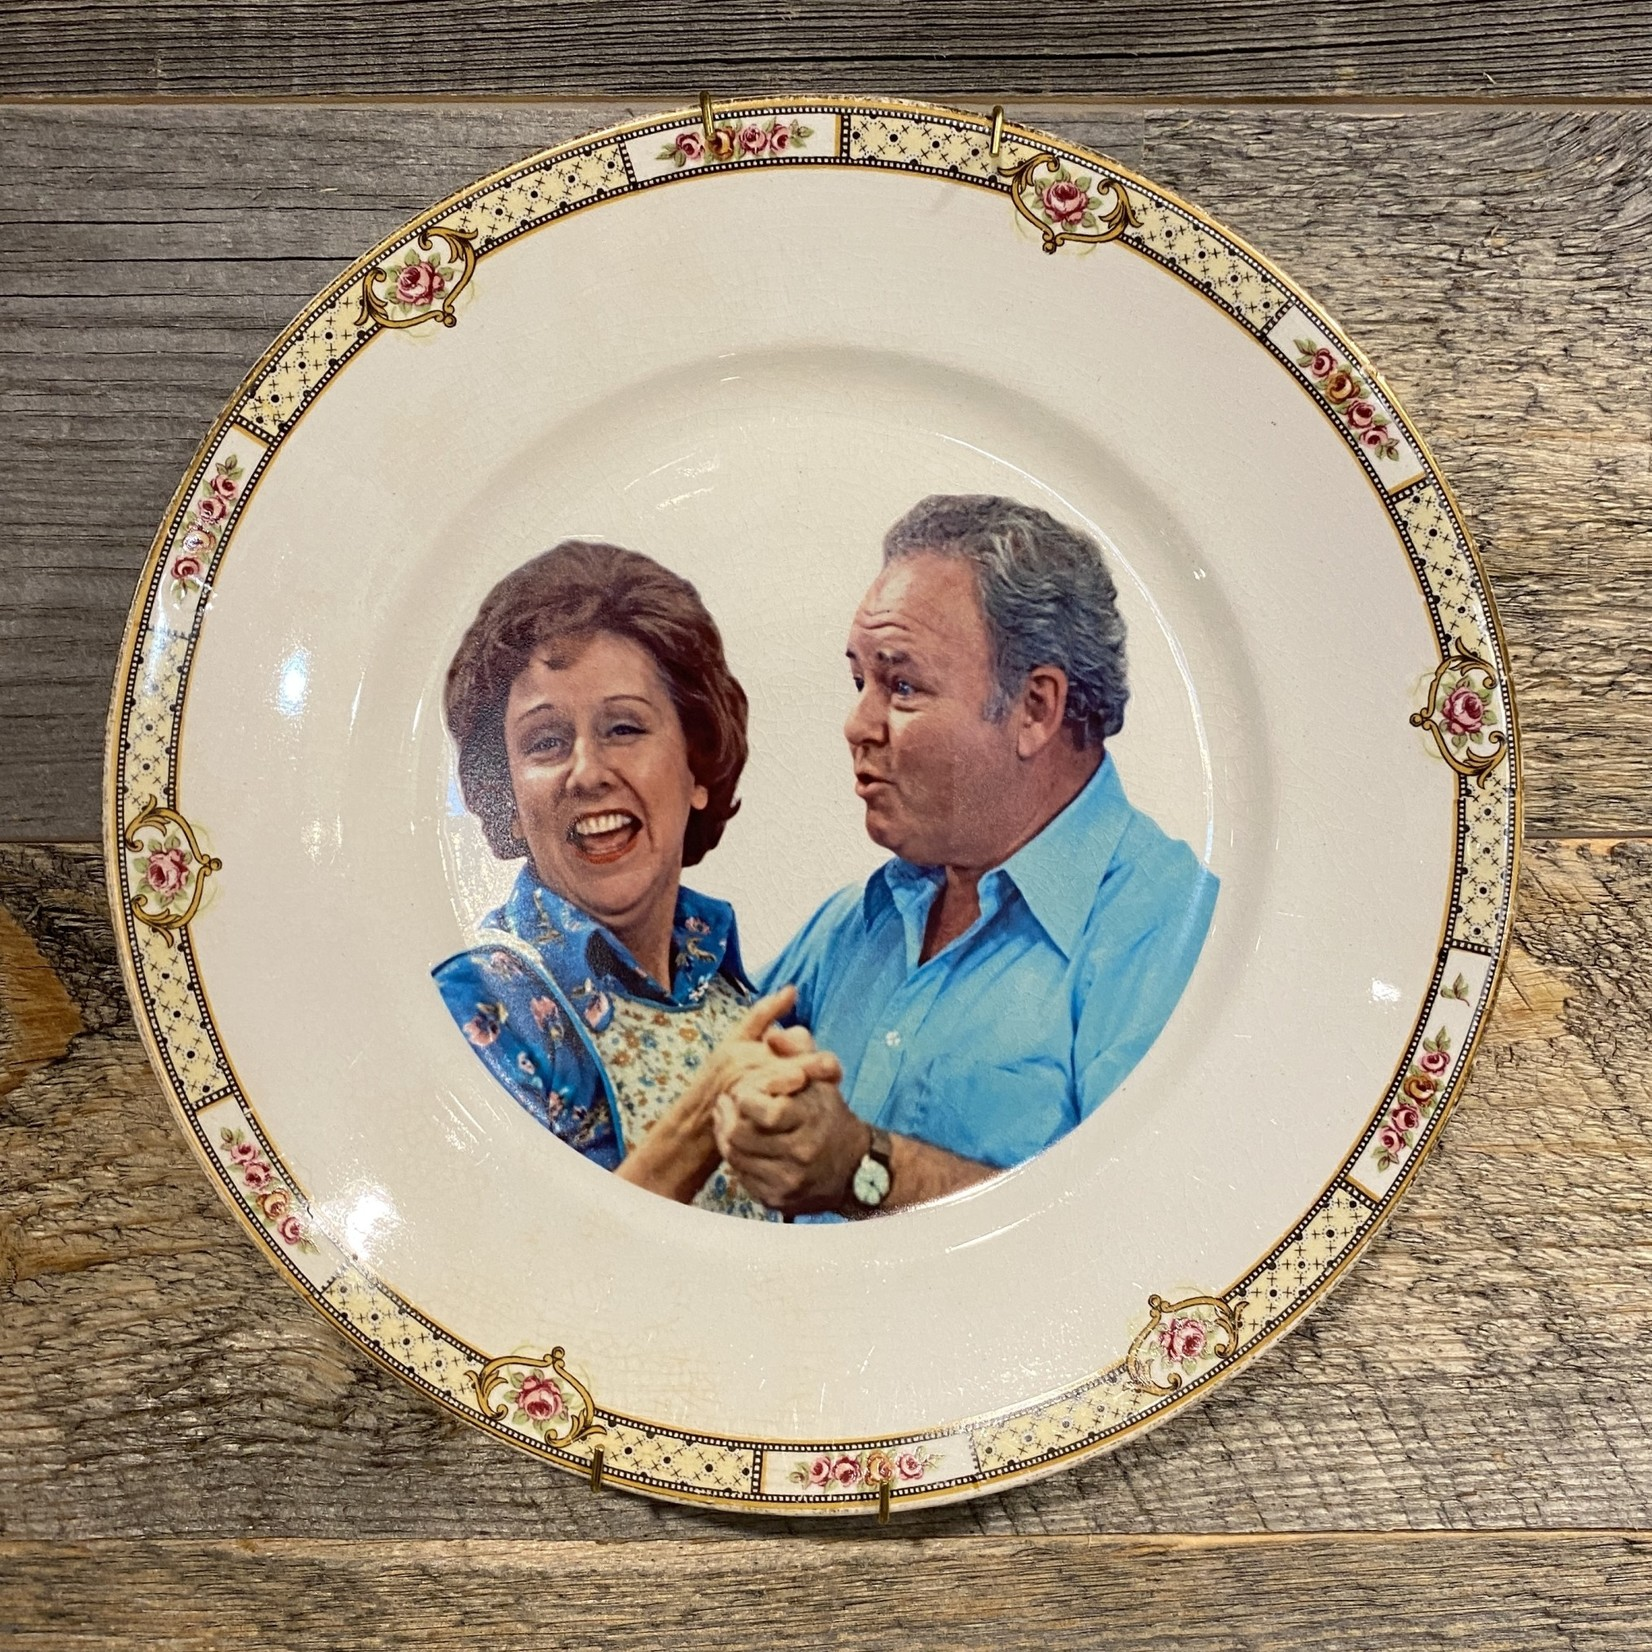 Camp Mercantile Camp Mercantile  Archie and Edith Bunker Plate